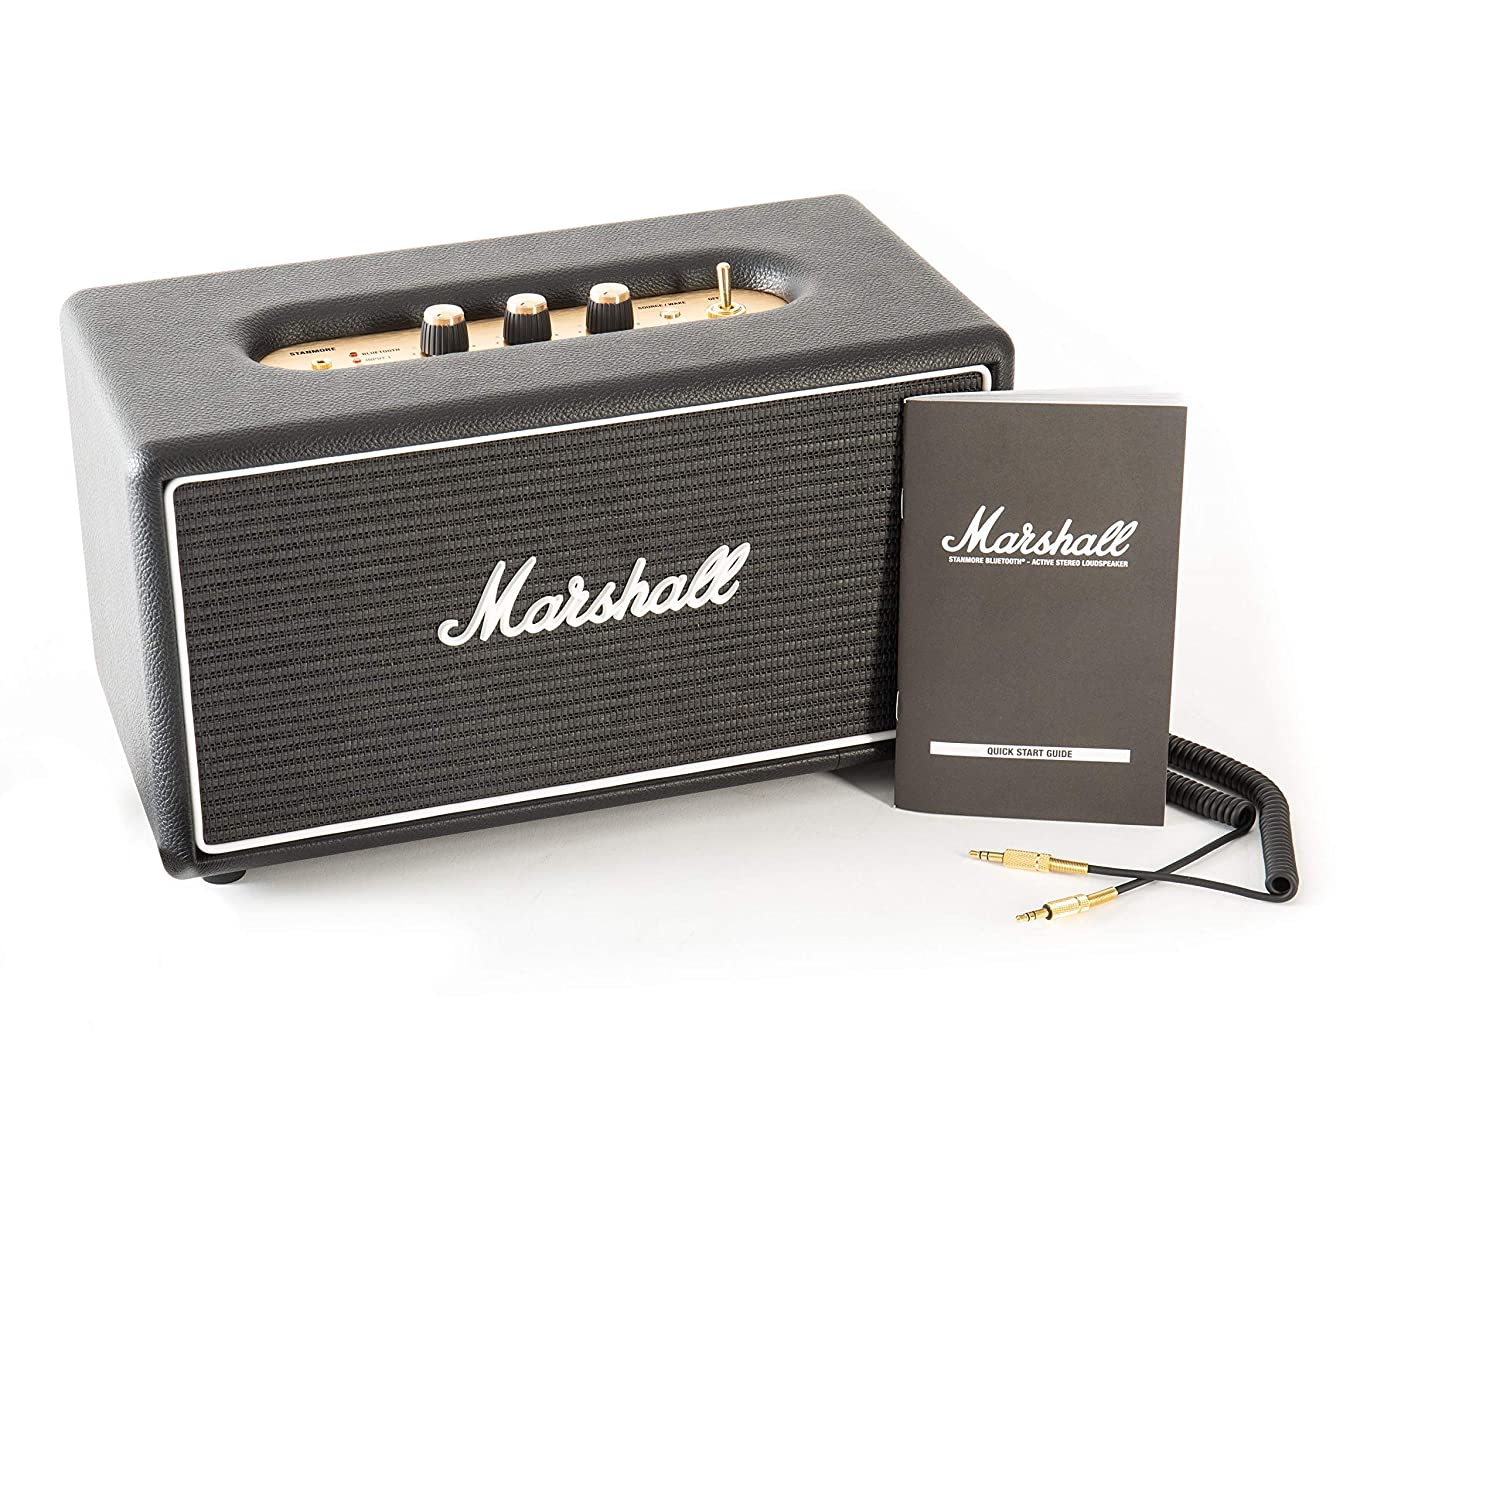 Marshall Stanmore Classic Line Bluetooth Speaker System (Black)  Amazon.in   Electronics 526bcfe3cd46f